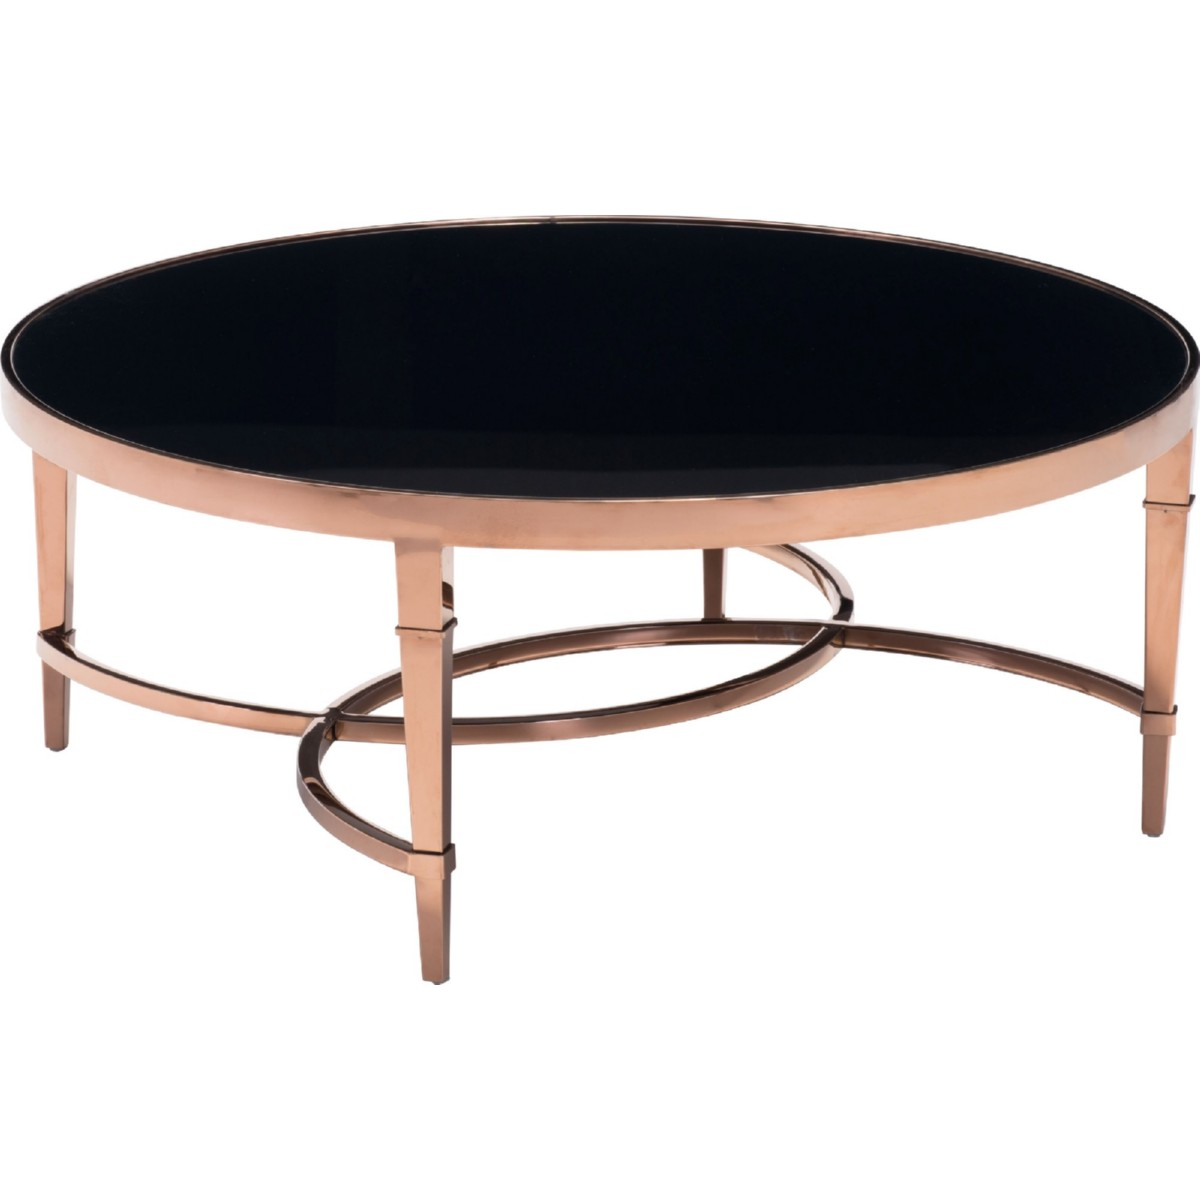 Round black glass coffee table - Zuo Modern Elite Coffee Table In Polished Rose Gold W Round Black Glass Top